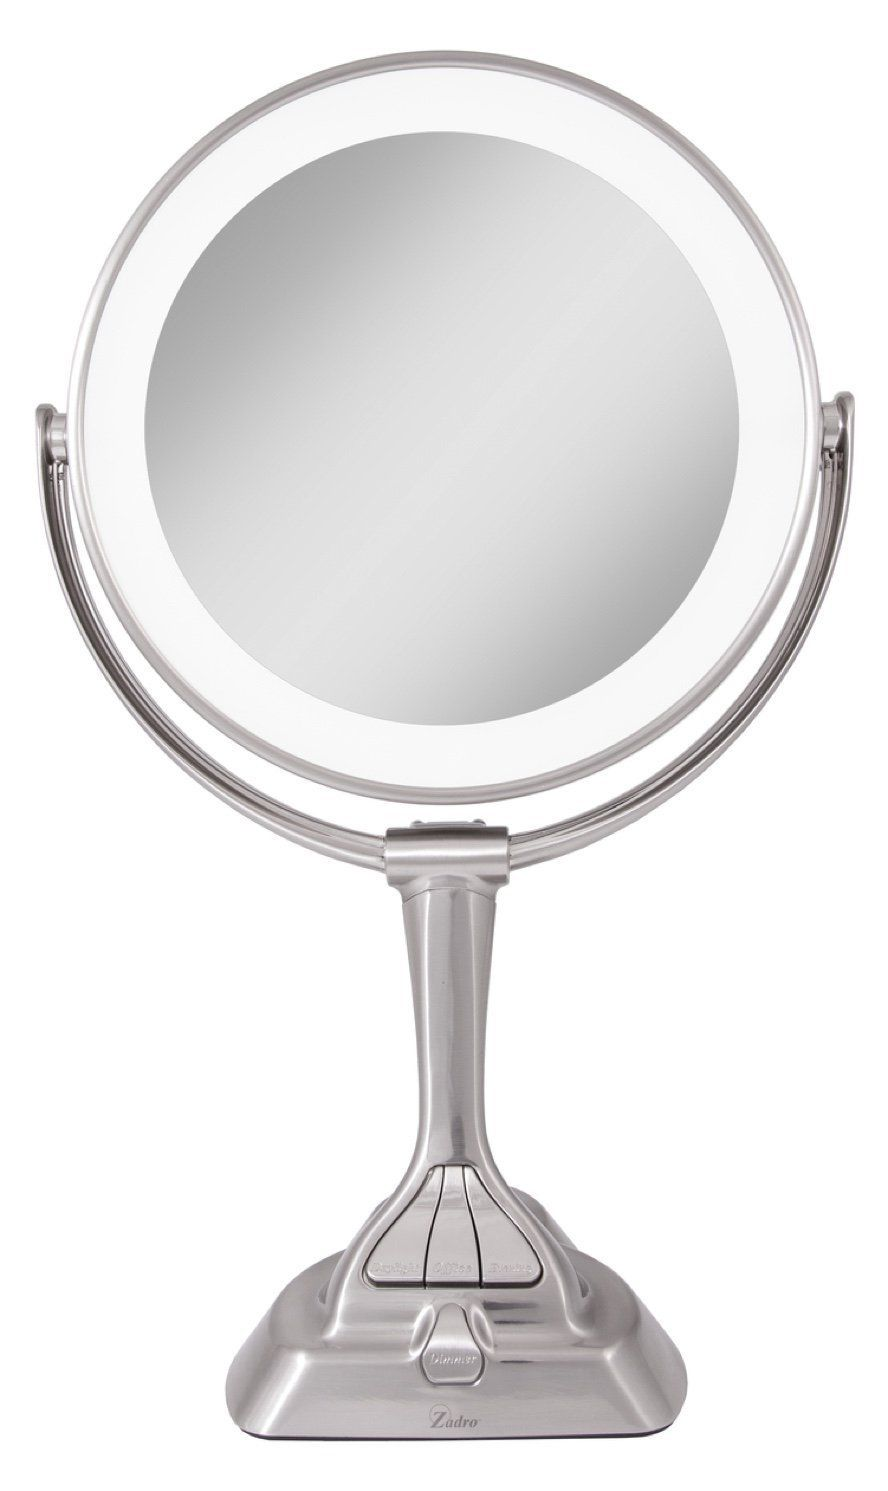 Conair Illuminated Mirror | Conair Lighted Makeup Mirror | Makeup Mirror Lighted